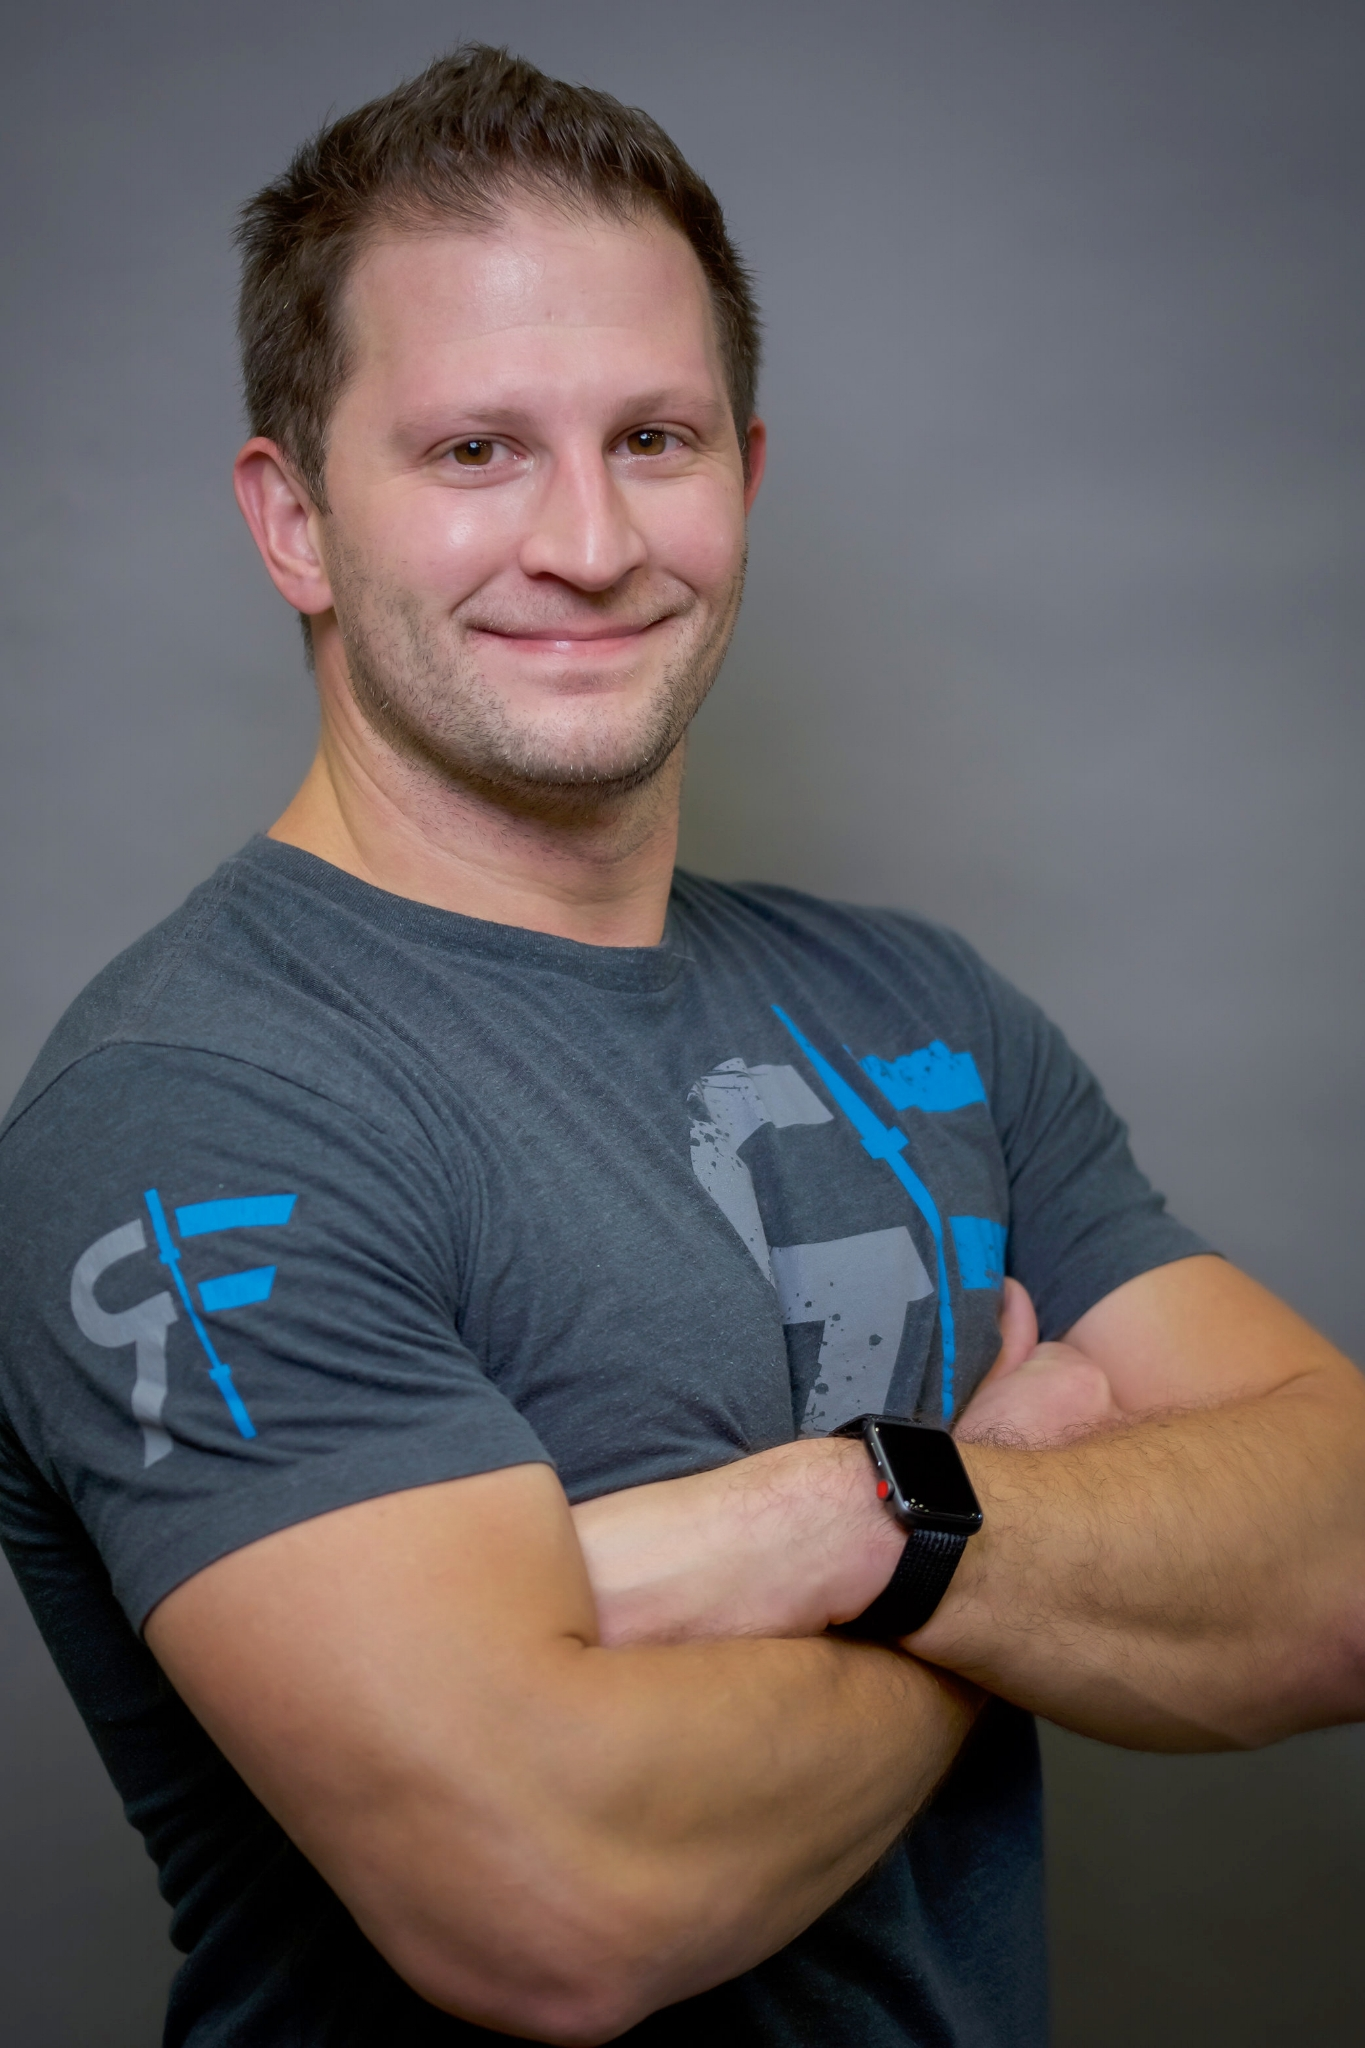 Coach Mike    Specializations  CrossFit Level 2 Trainer CrossFit Kids Trainer CrossFit Gymnastics CrossFit Strongman CrossFit Mobility  Mike has been CrossFitting for 6 years and fully believes CrossFit is the best way to lead a healthy and full life. Mike, and his wife Sheilla, are the proud parents of their twin boys, Emmett and Zack, and cannot wait for them to join the CF Kids class! Mike's favorite part about coaching is seeing the excitement on the athletes faces when they accomplish goals they think they couldn't.